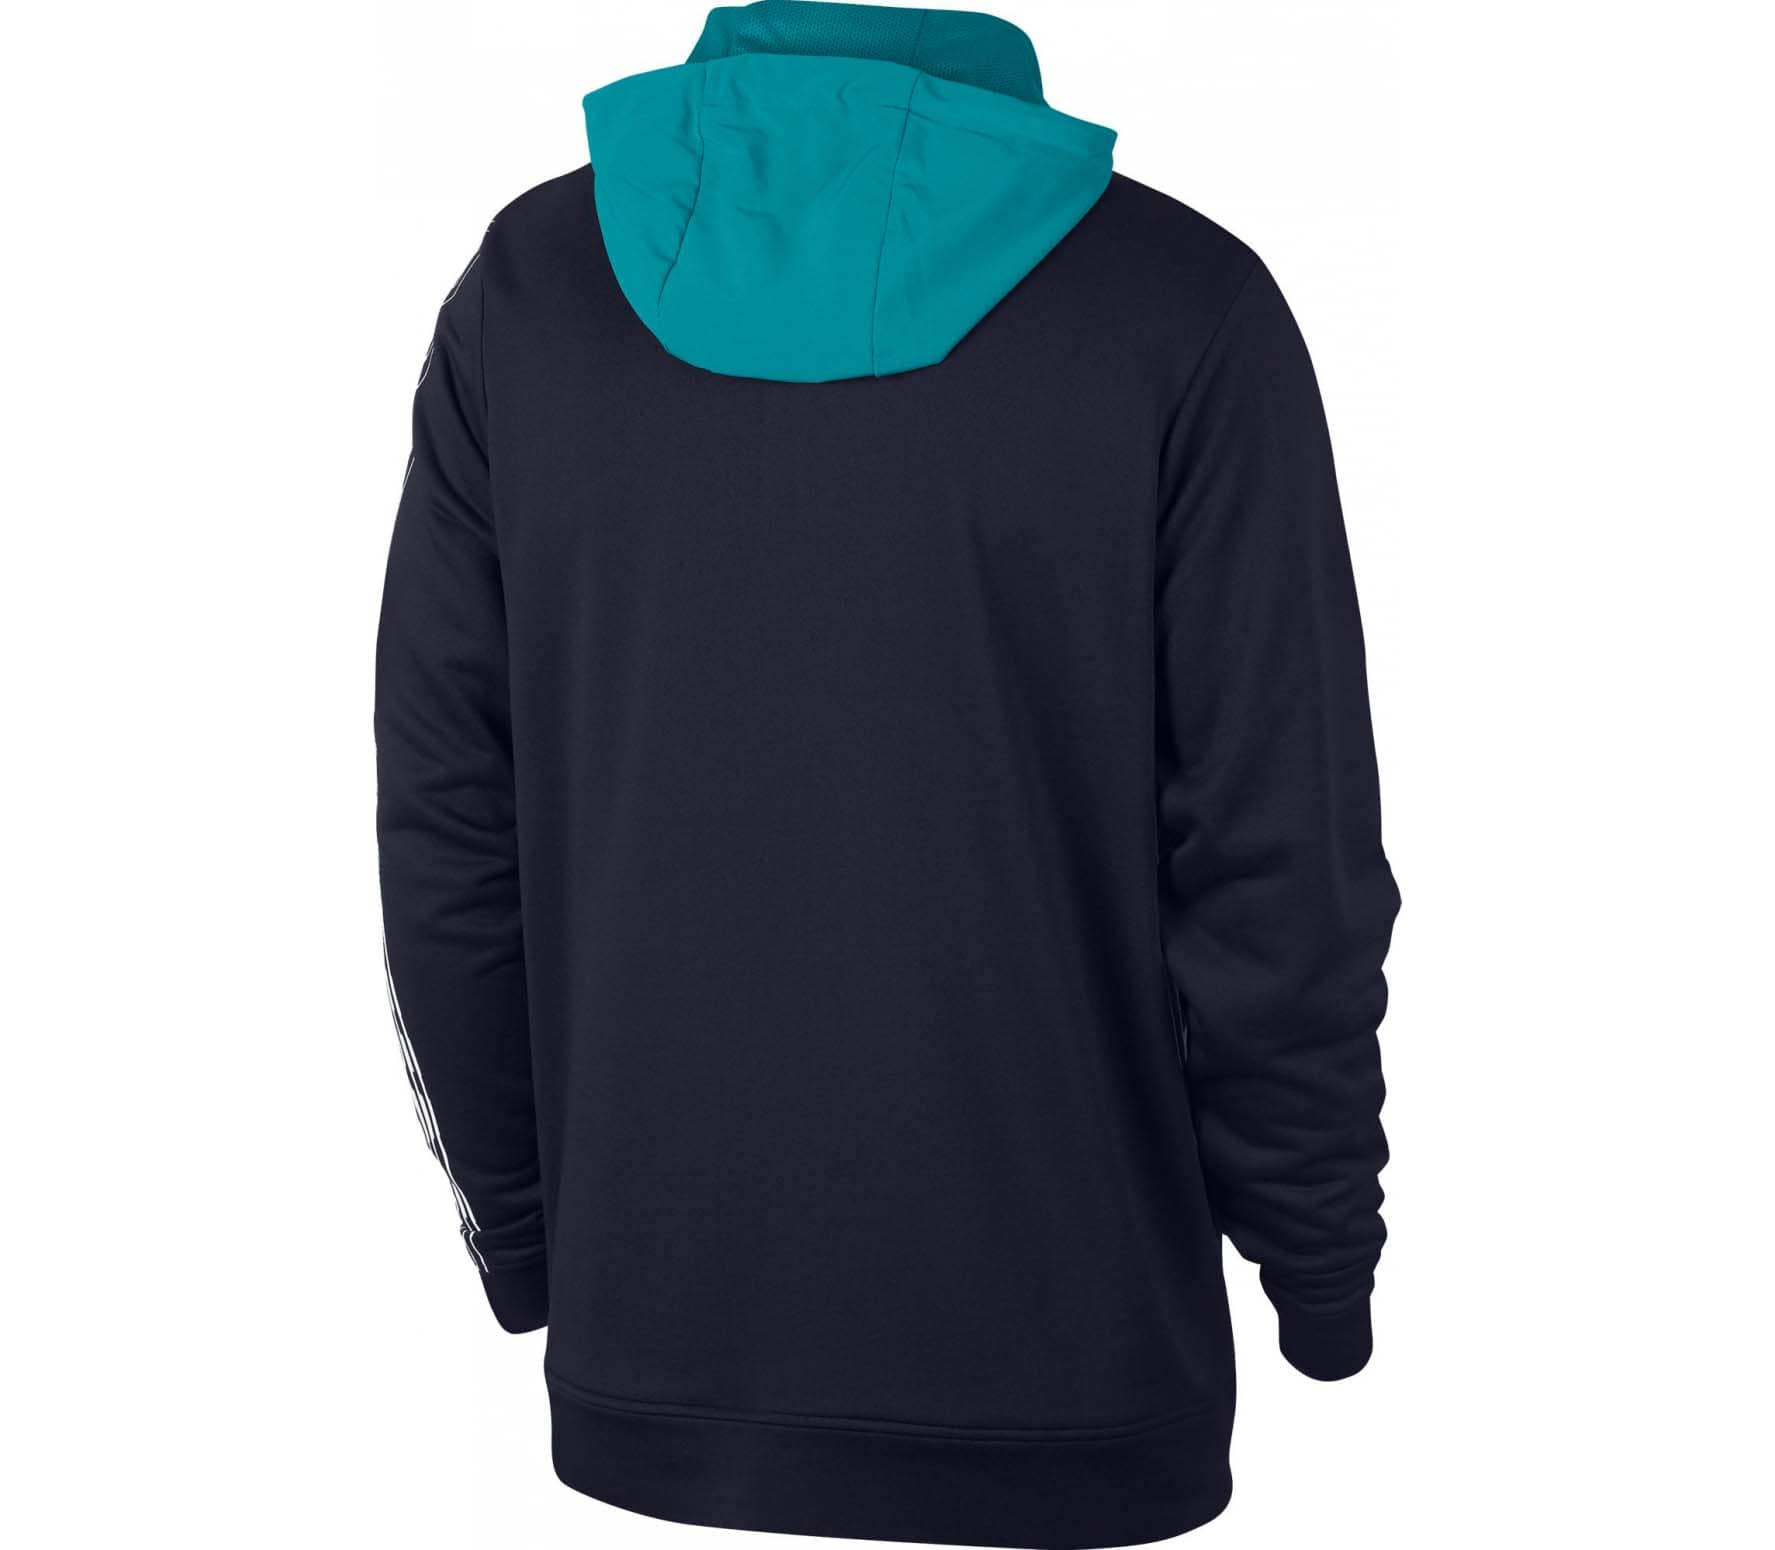 Nike - Dri-FIT Fleece Herren Trainingshoodie (blau)